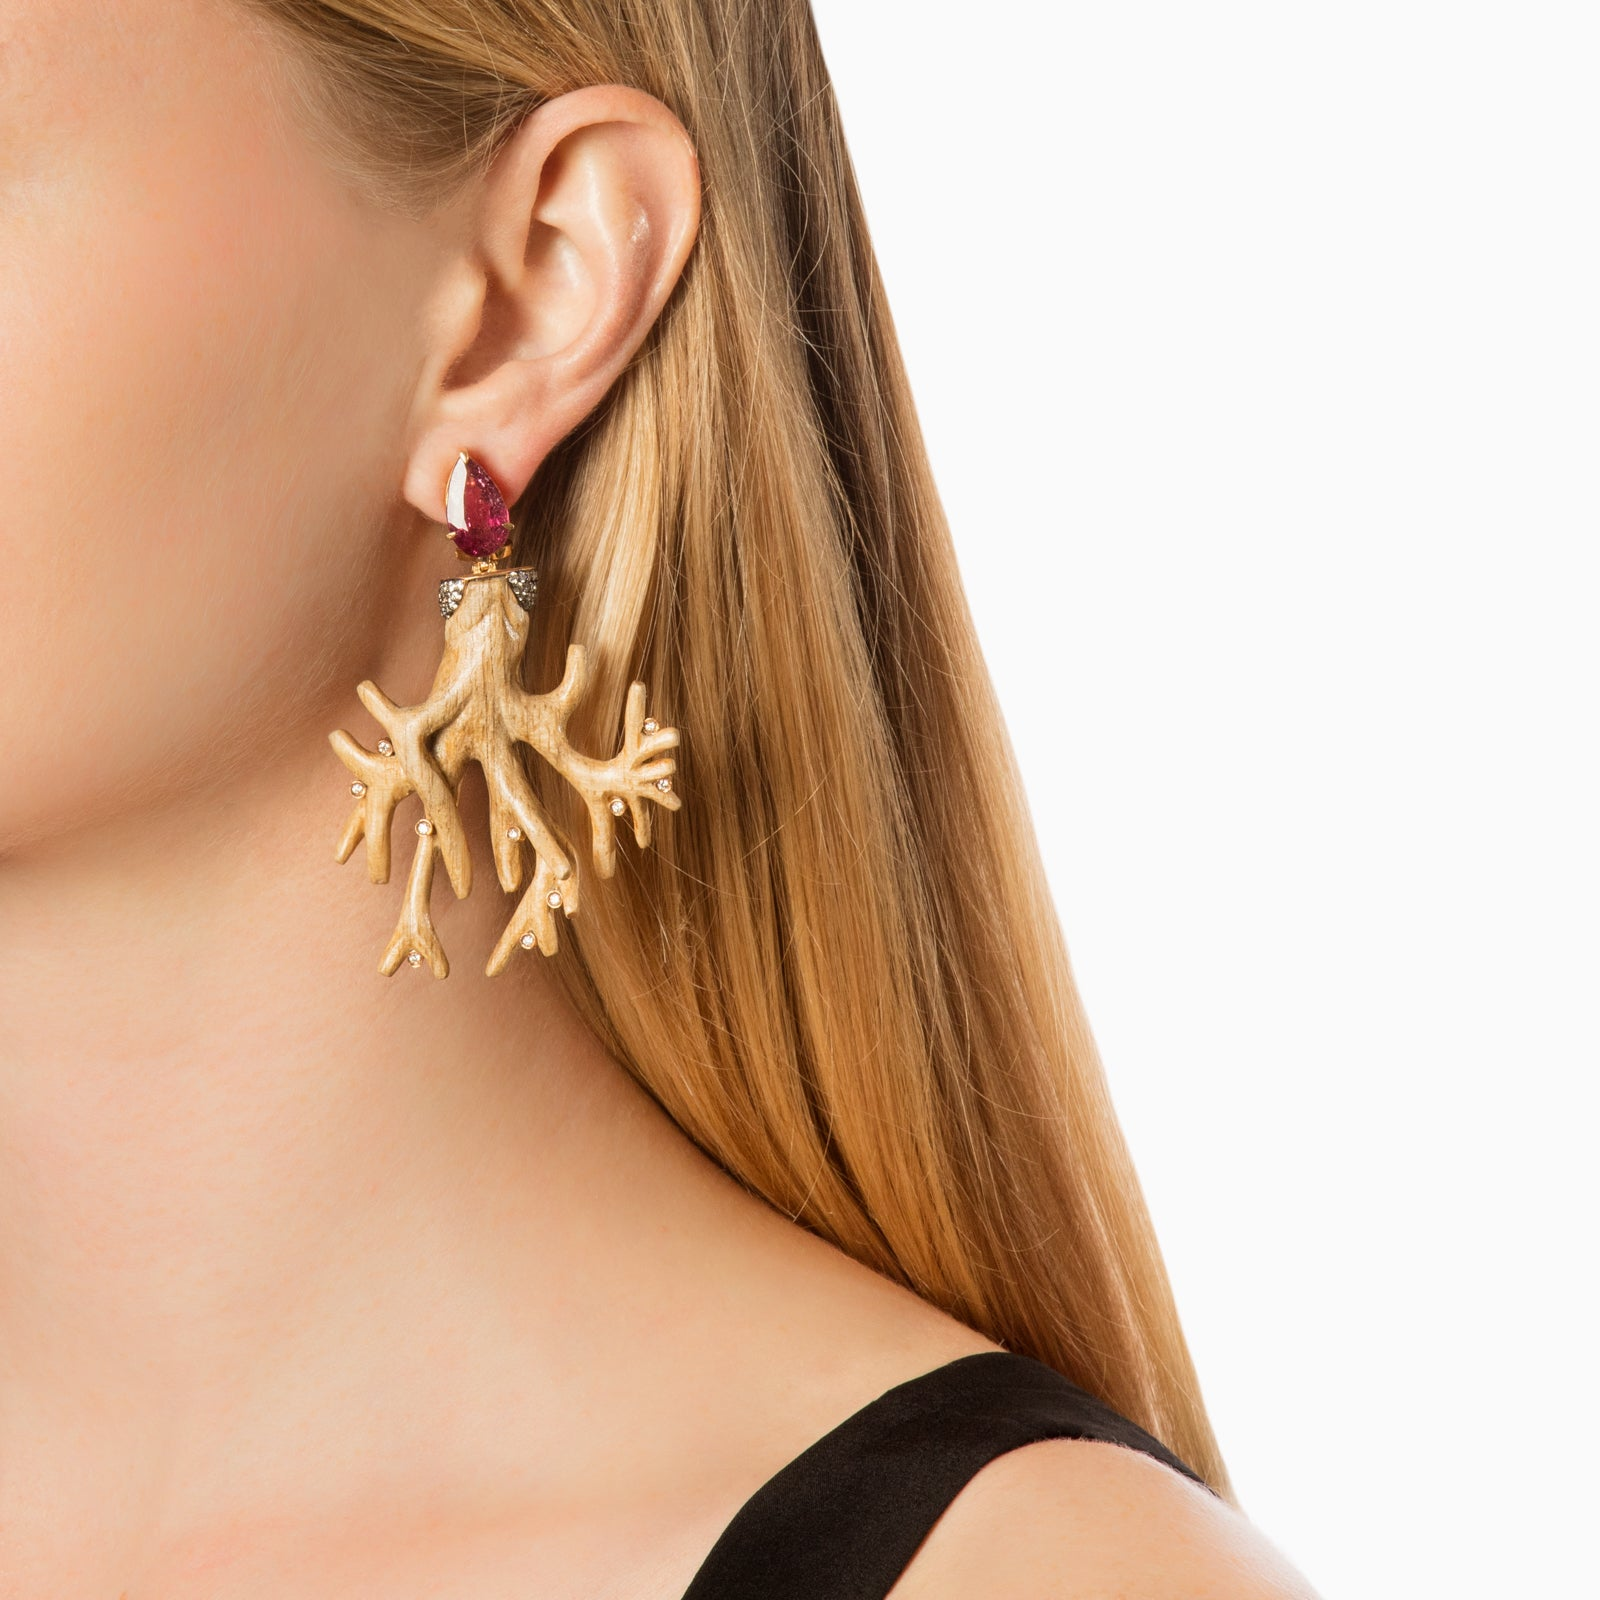 Silvia Furmanovich Botanical Coral Branch Earrings - Earrings - Broken English Jewelry